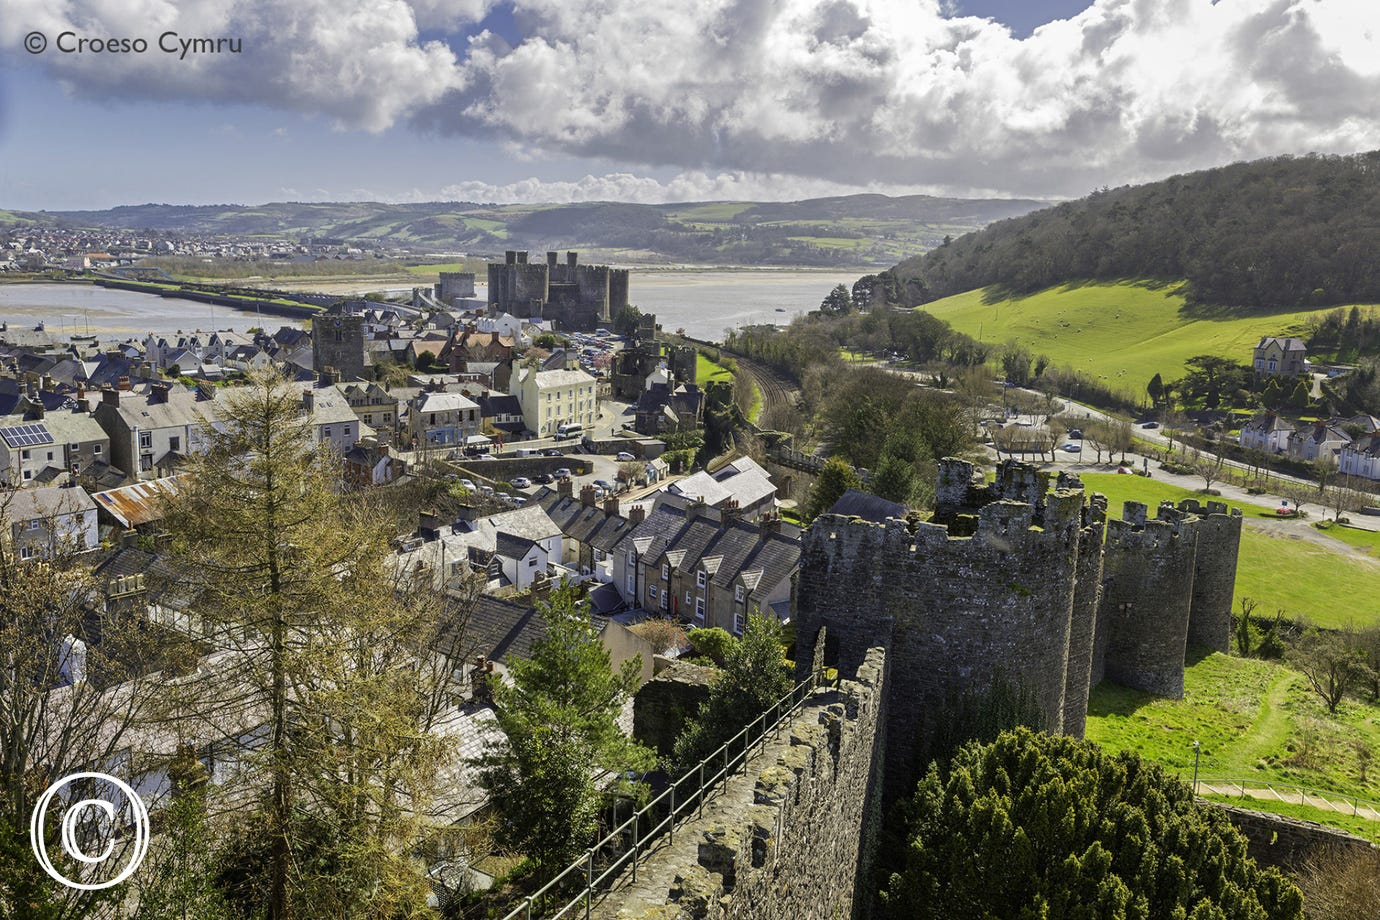 The medieval castle town of Conwy